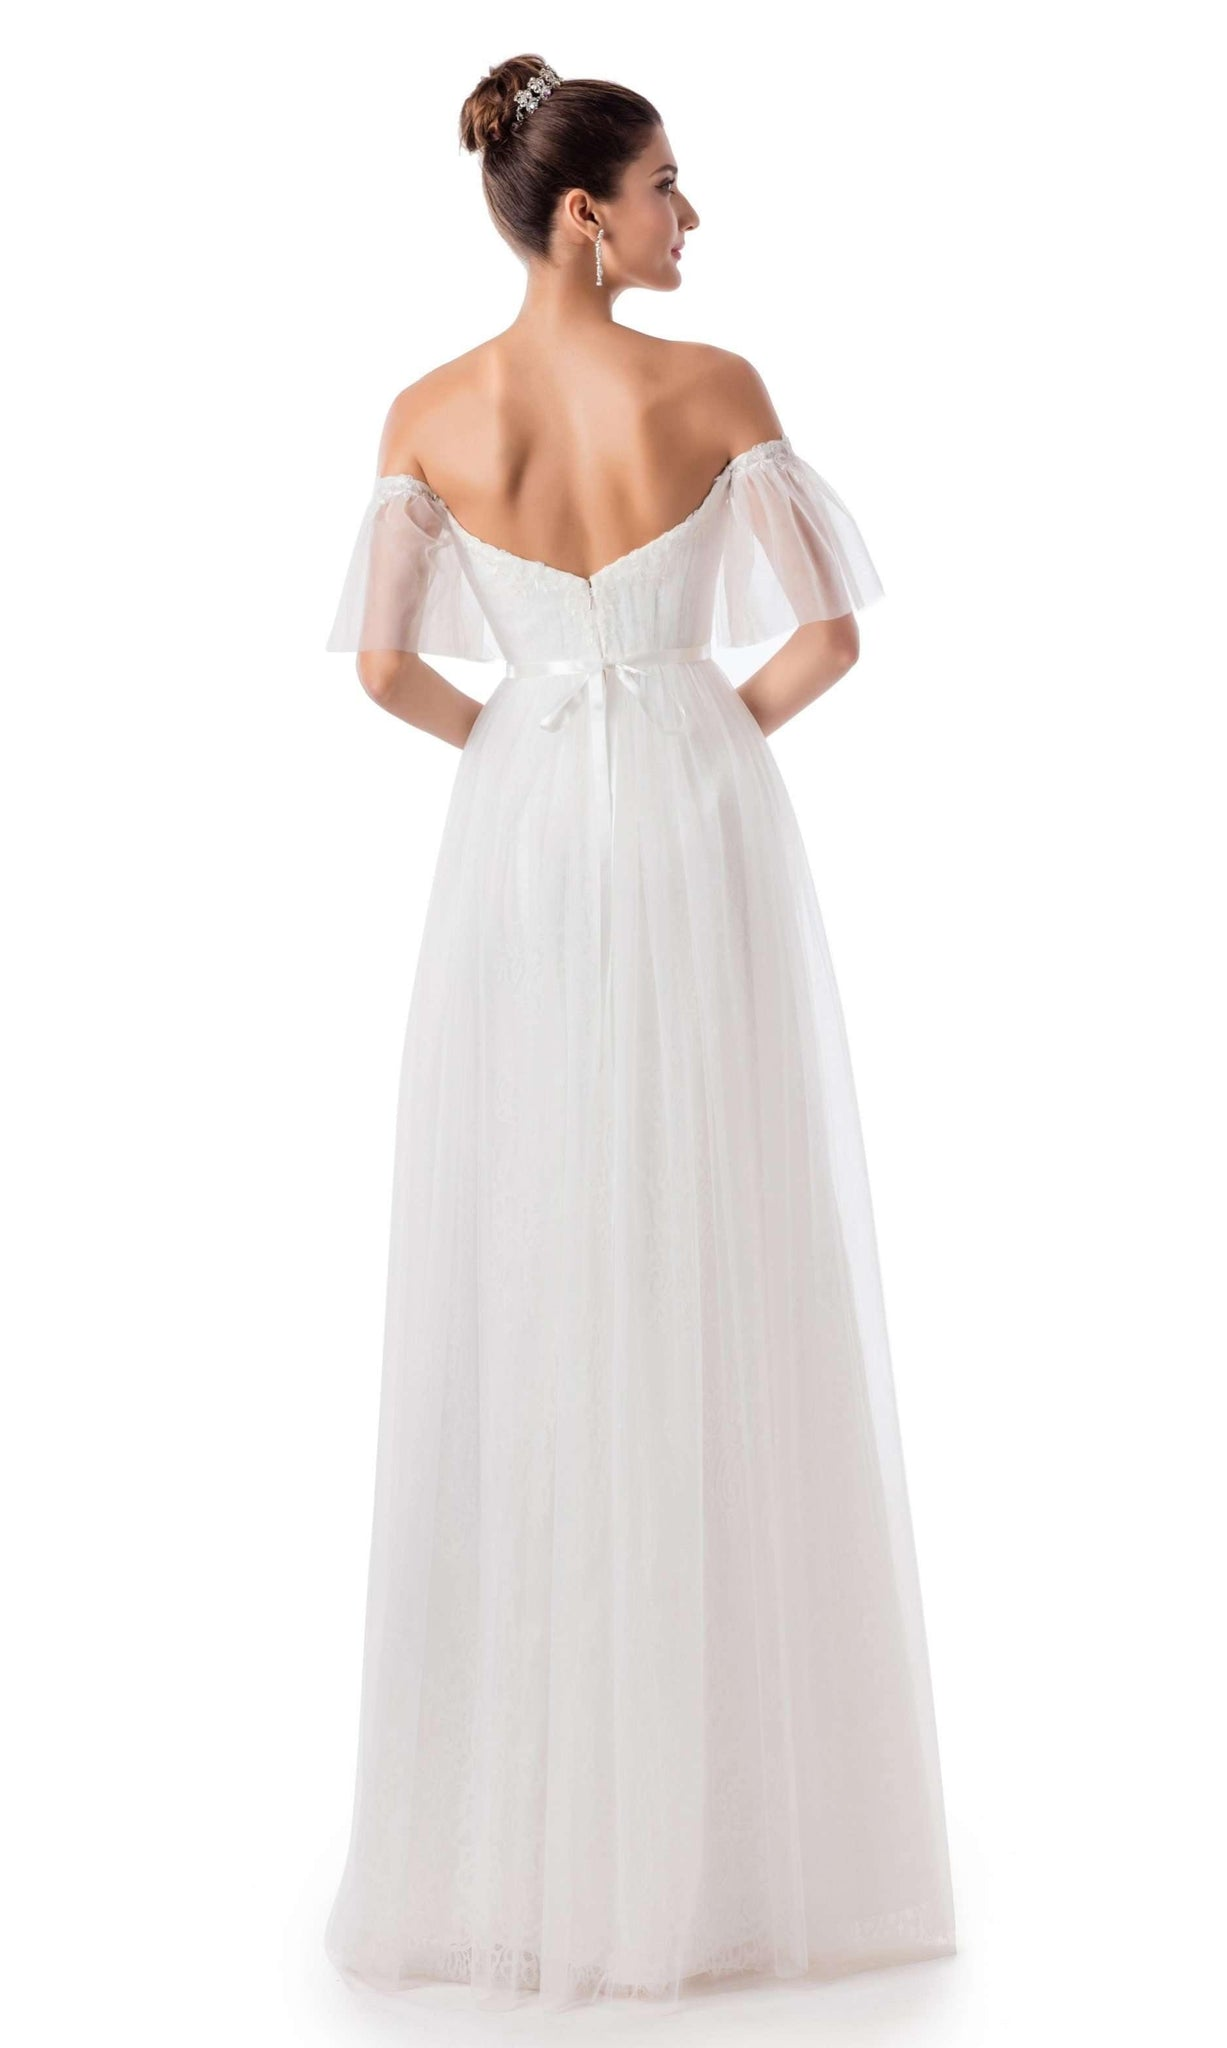 VENUS BRIDAL - Milly - Adore Bridal and Occasion Wear